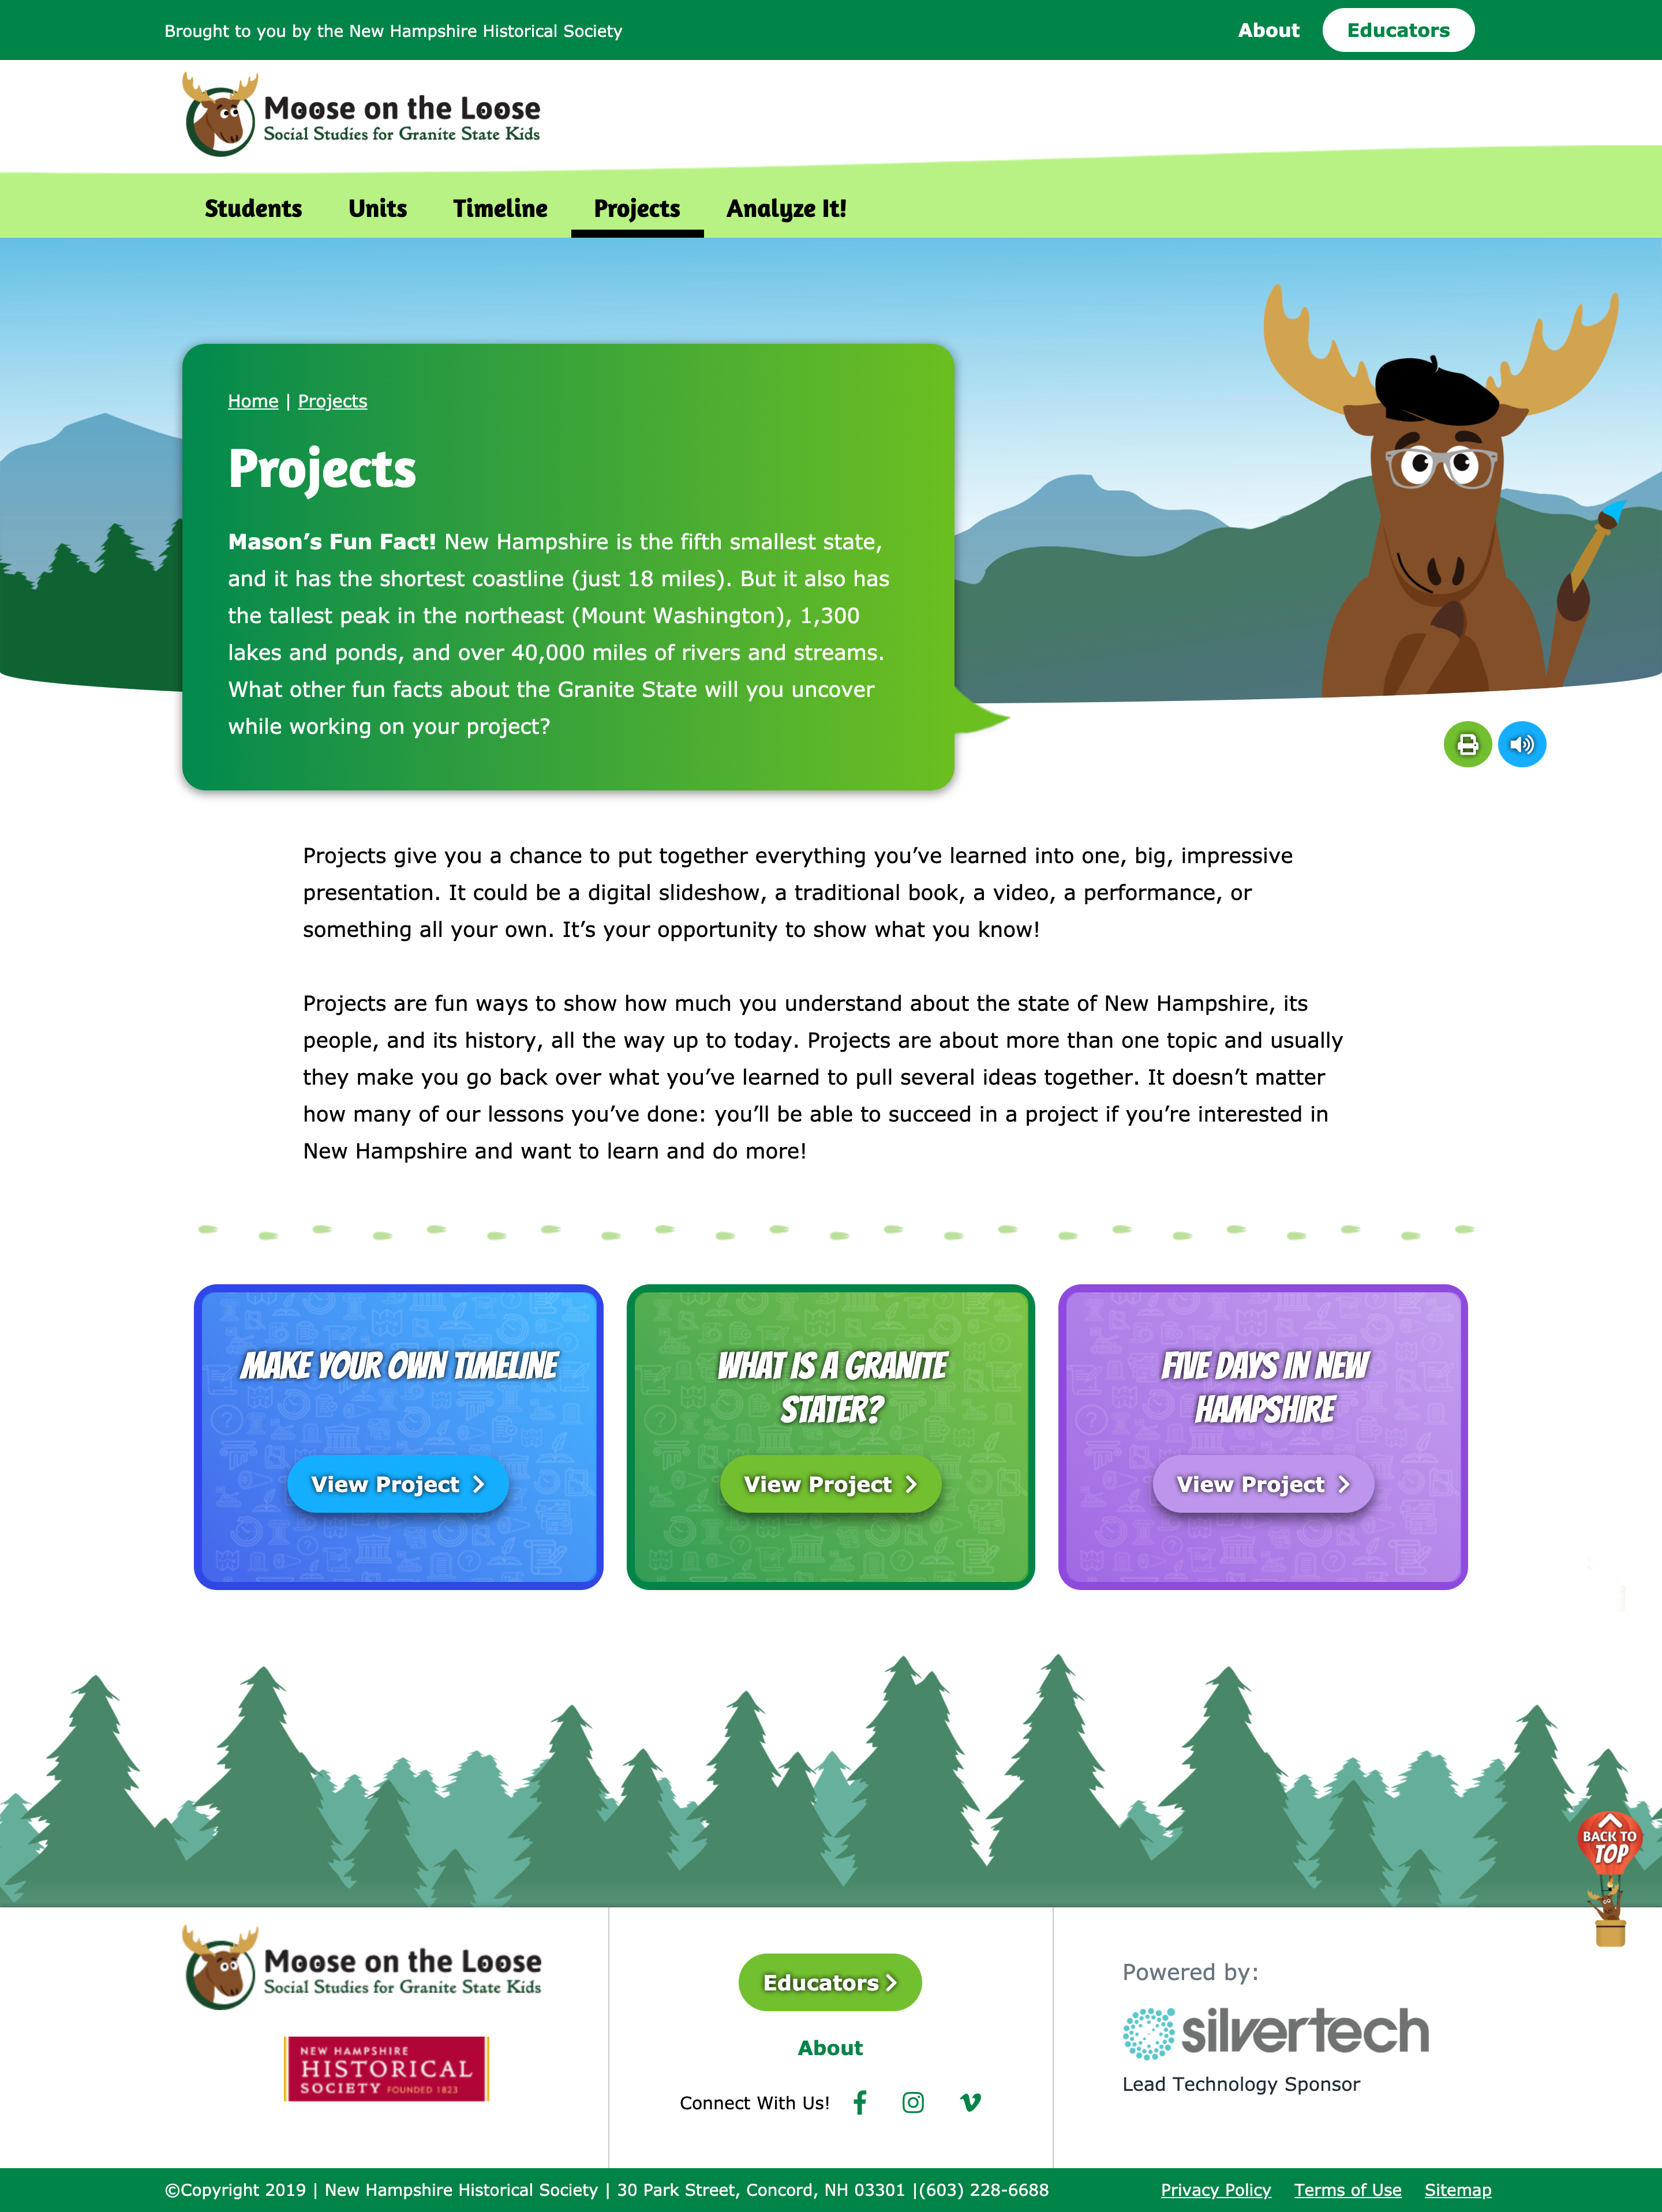 Projects landing page.